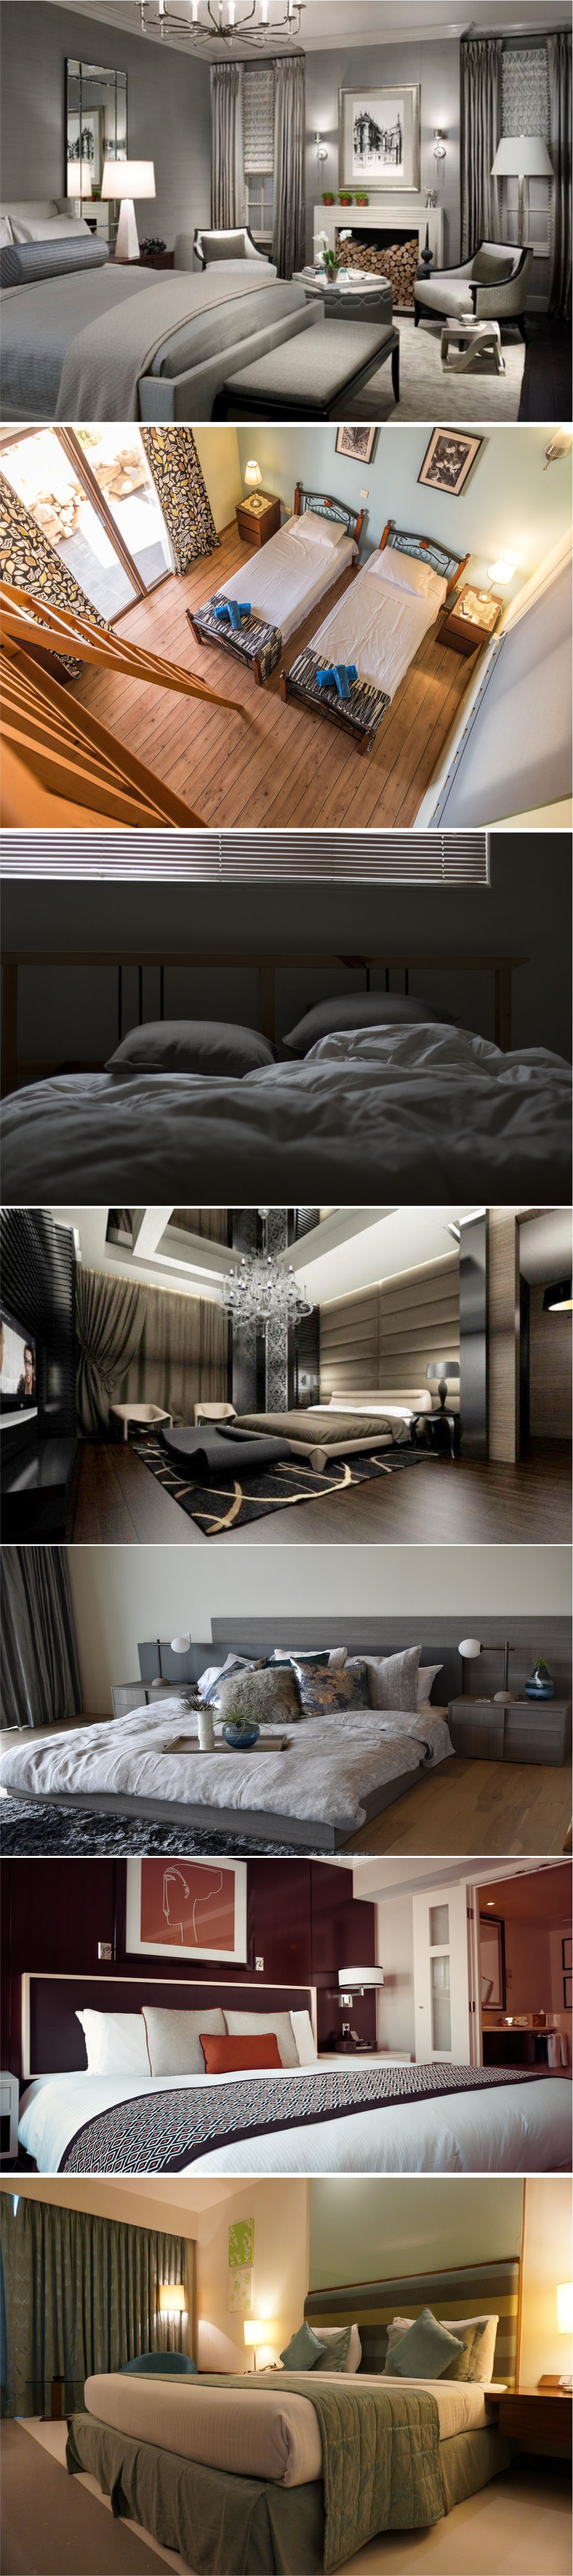 New Awesome luxurious bedrooms